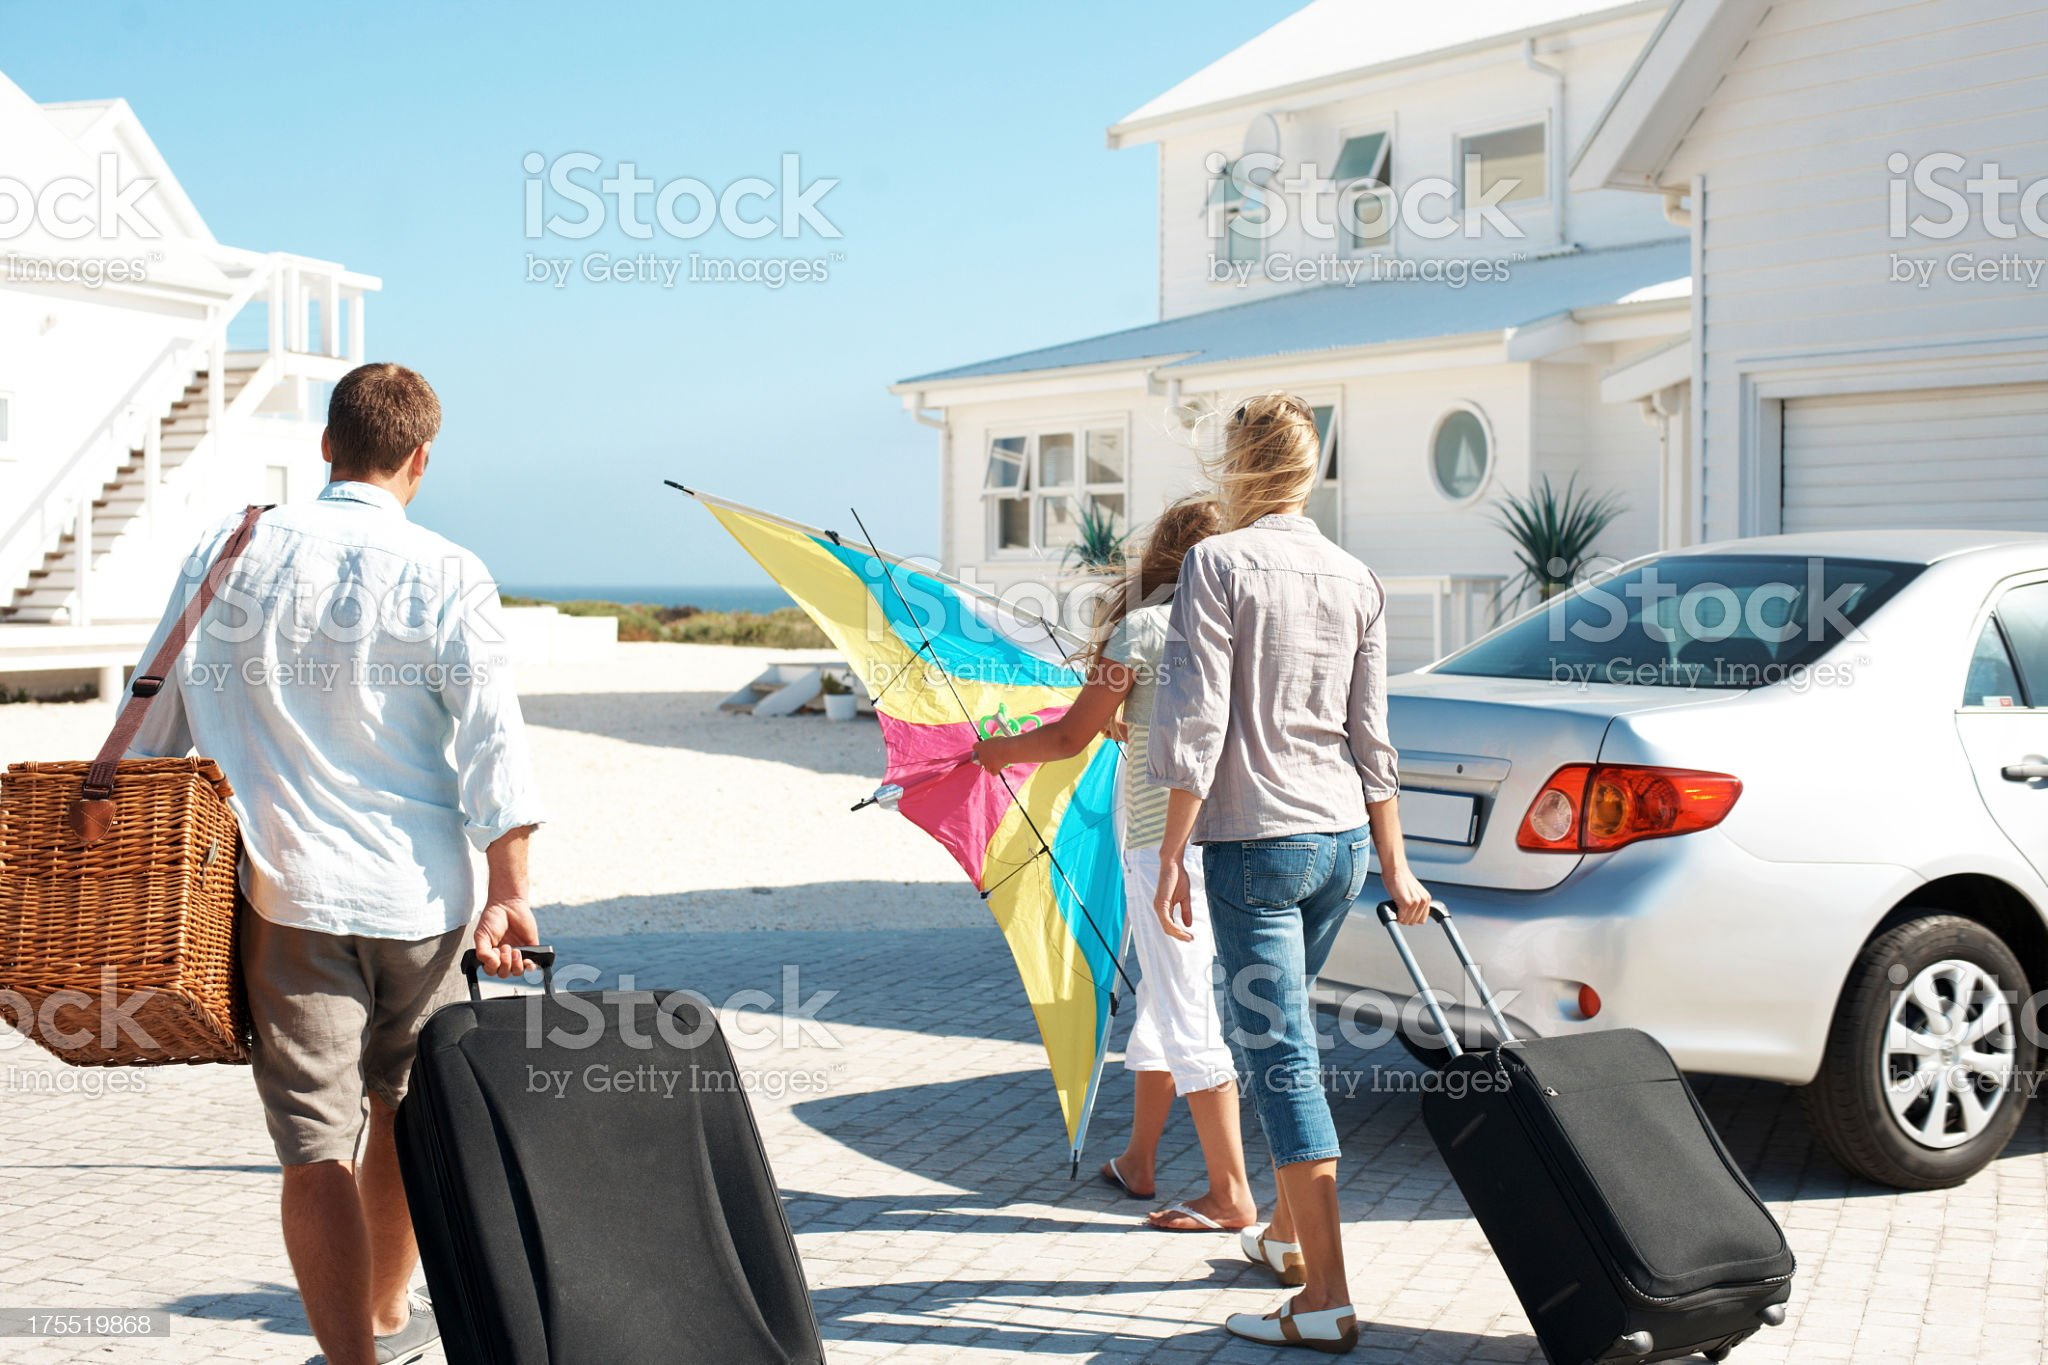 Ready to start their family vacation royalty-free stock photo